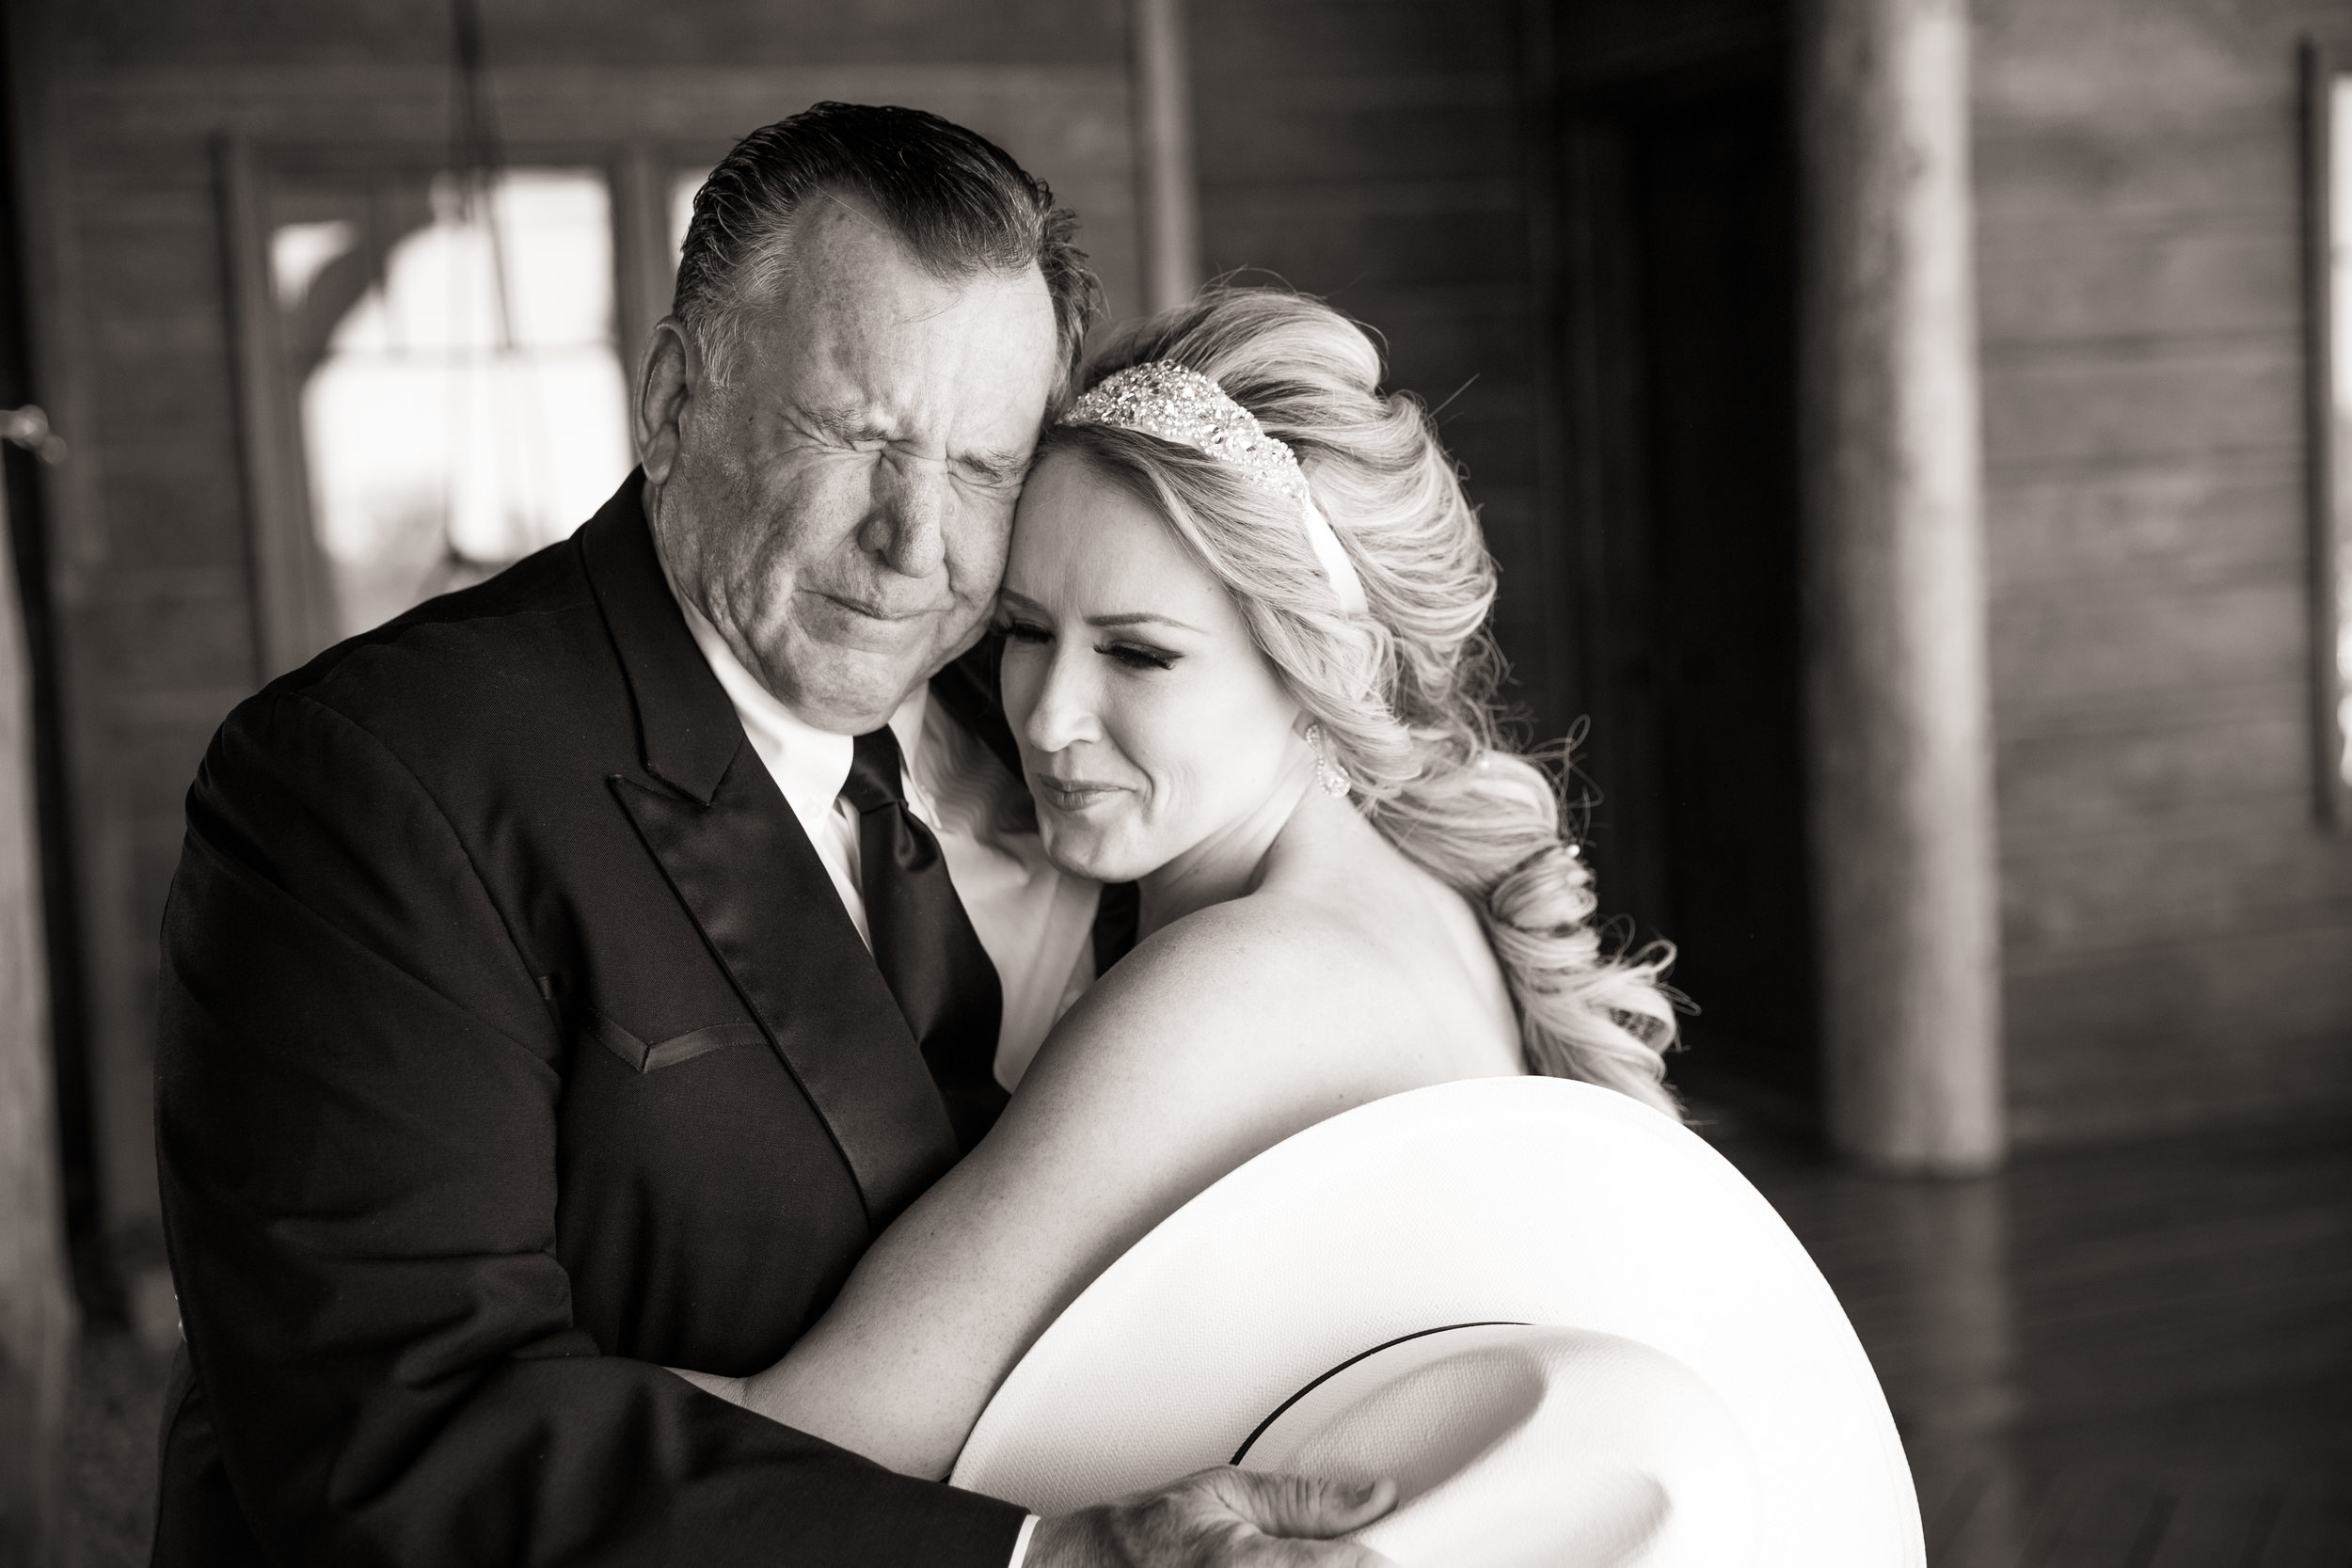 Imagine how this moment felt for this beautiful bride and her proud father. You too can have a moment like this captured by our amazing team.